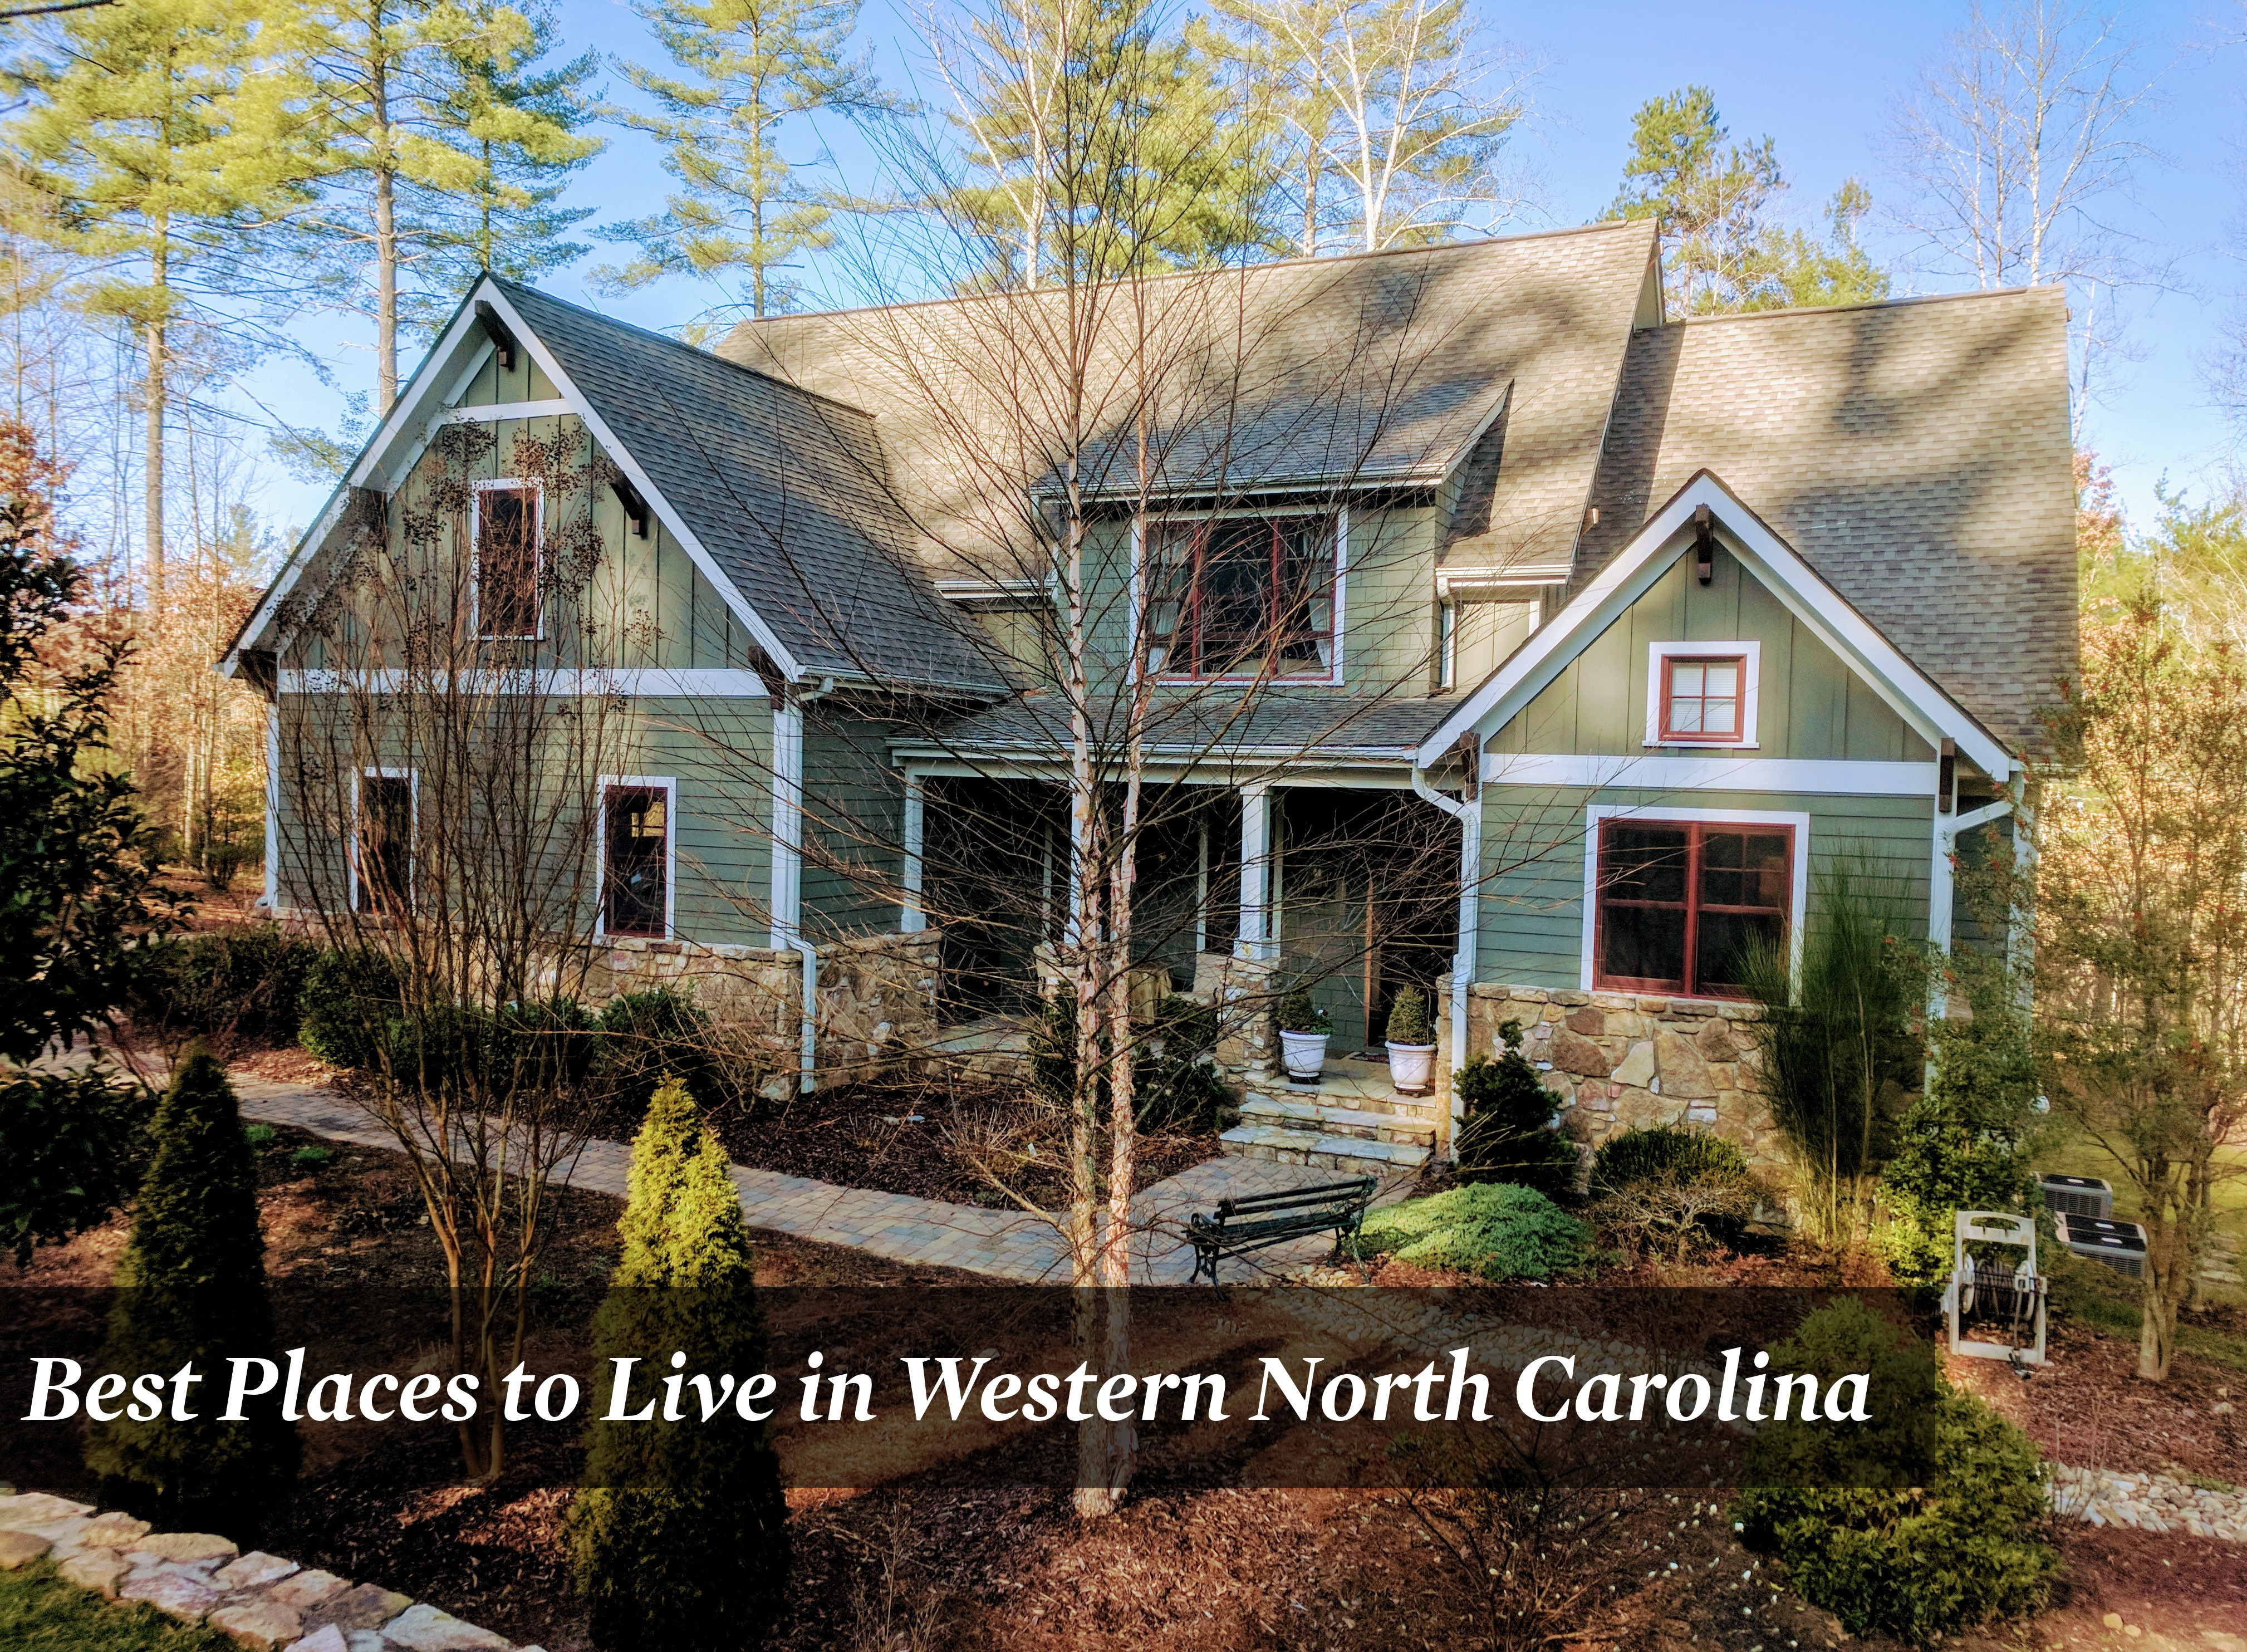 Best Places to Live in Western North Carolina Where & Why